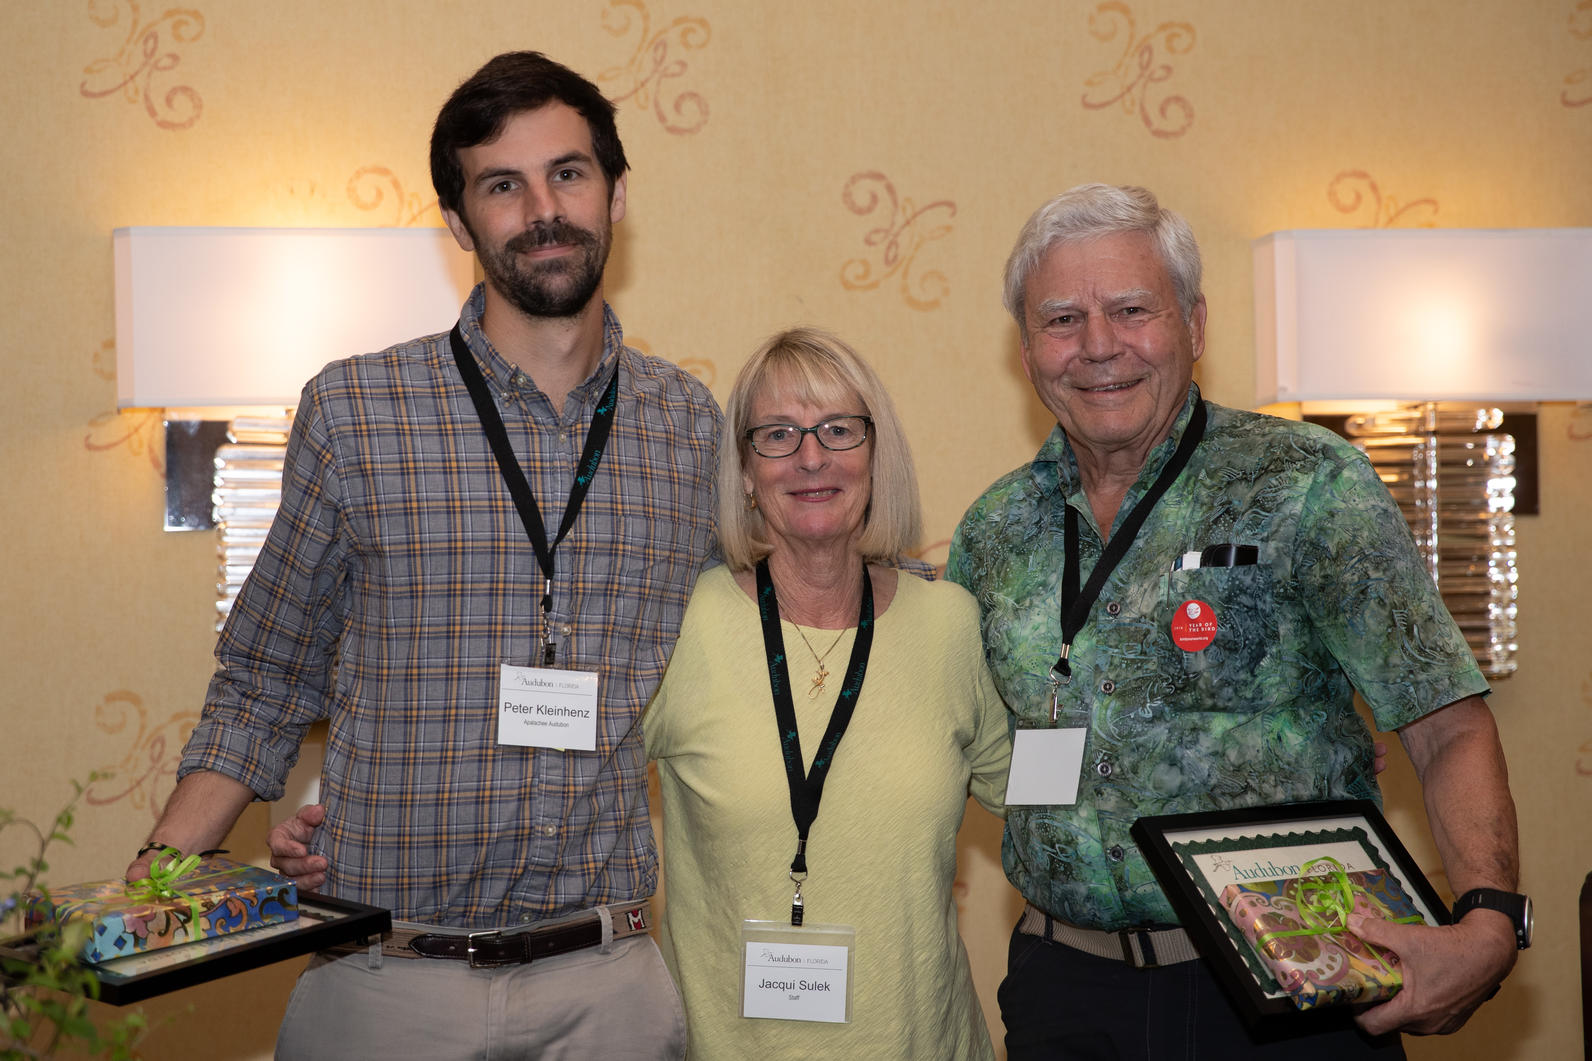 Two Audubon chapter leaders accept the award for being extraordinary leaders.